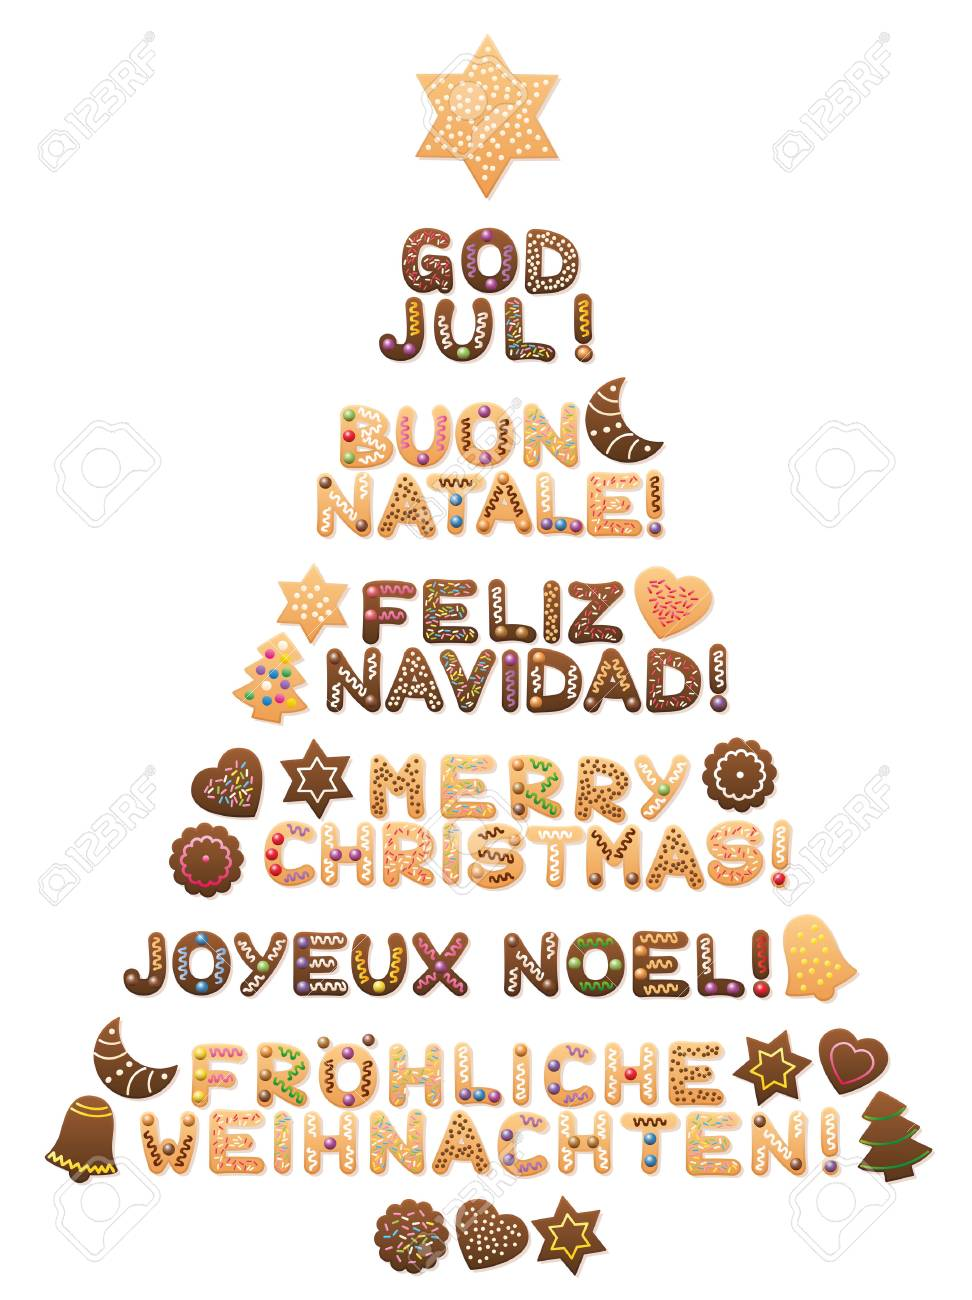 MERRY CHRISTMAS - written in swedish, italian, spanish, english, french and german language with cookies forming a sweet christmas tree. - 87848635